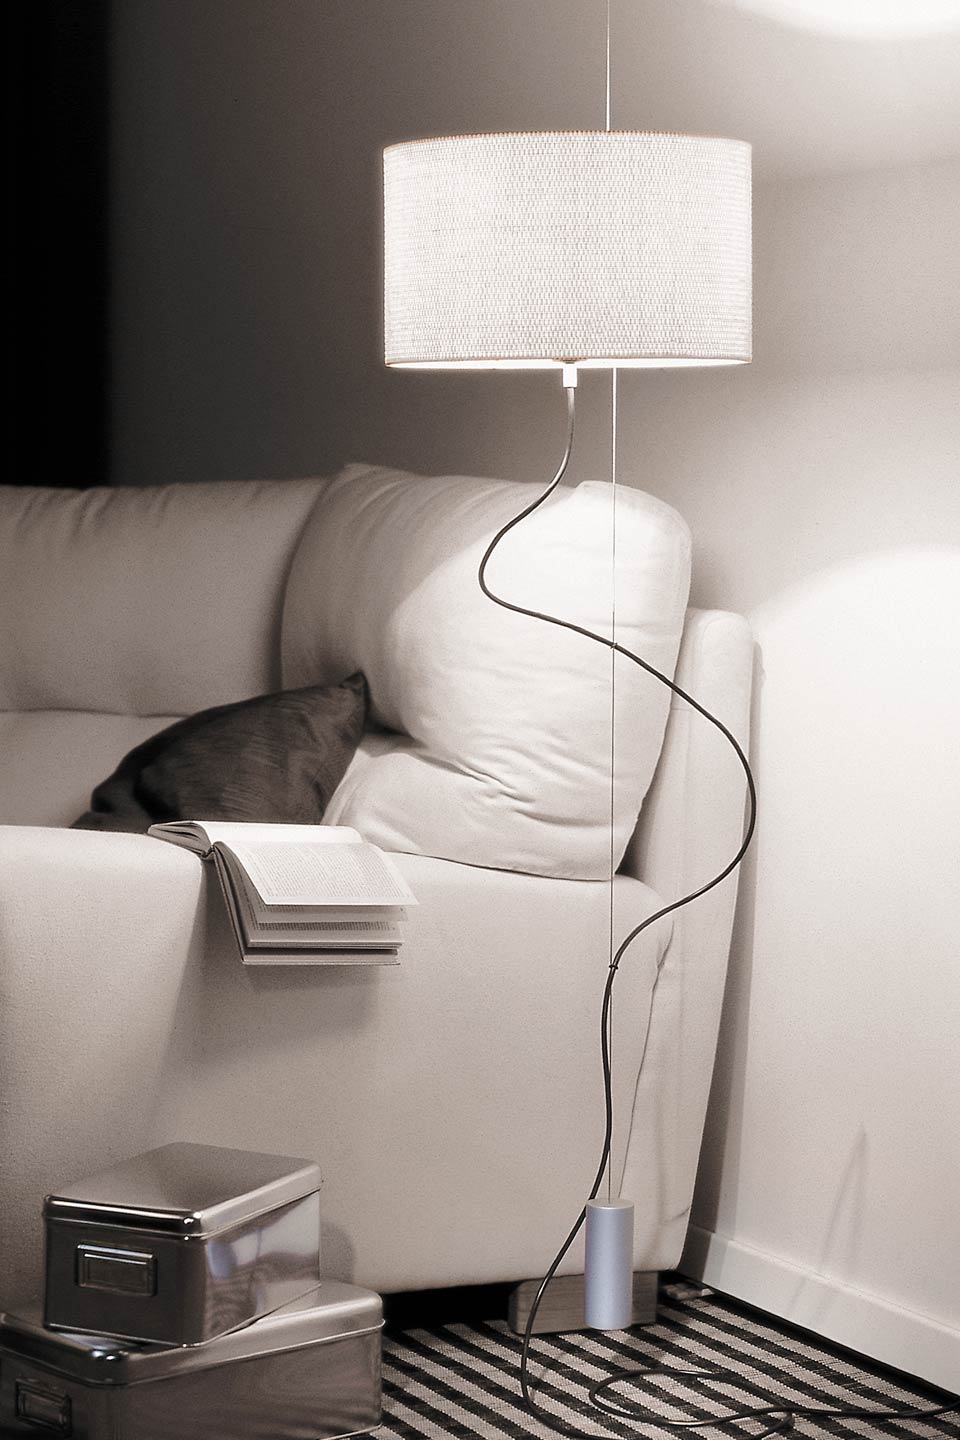 lampe suspendue avec prise murale table de lit a roulettes. Black Bedroom Furniture Sets. Home Design Ideas